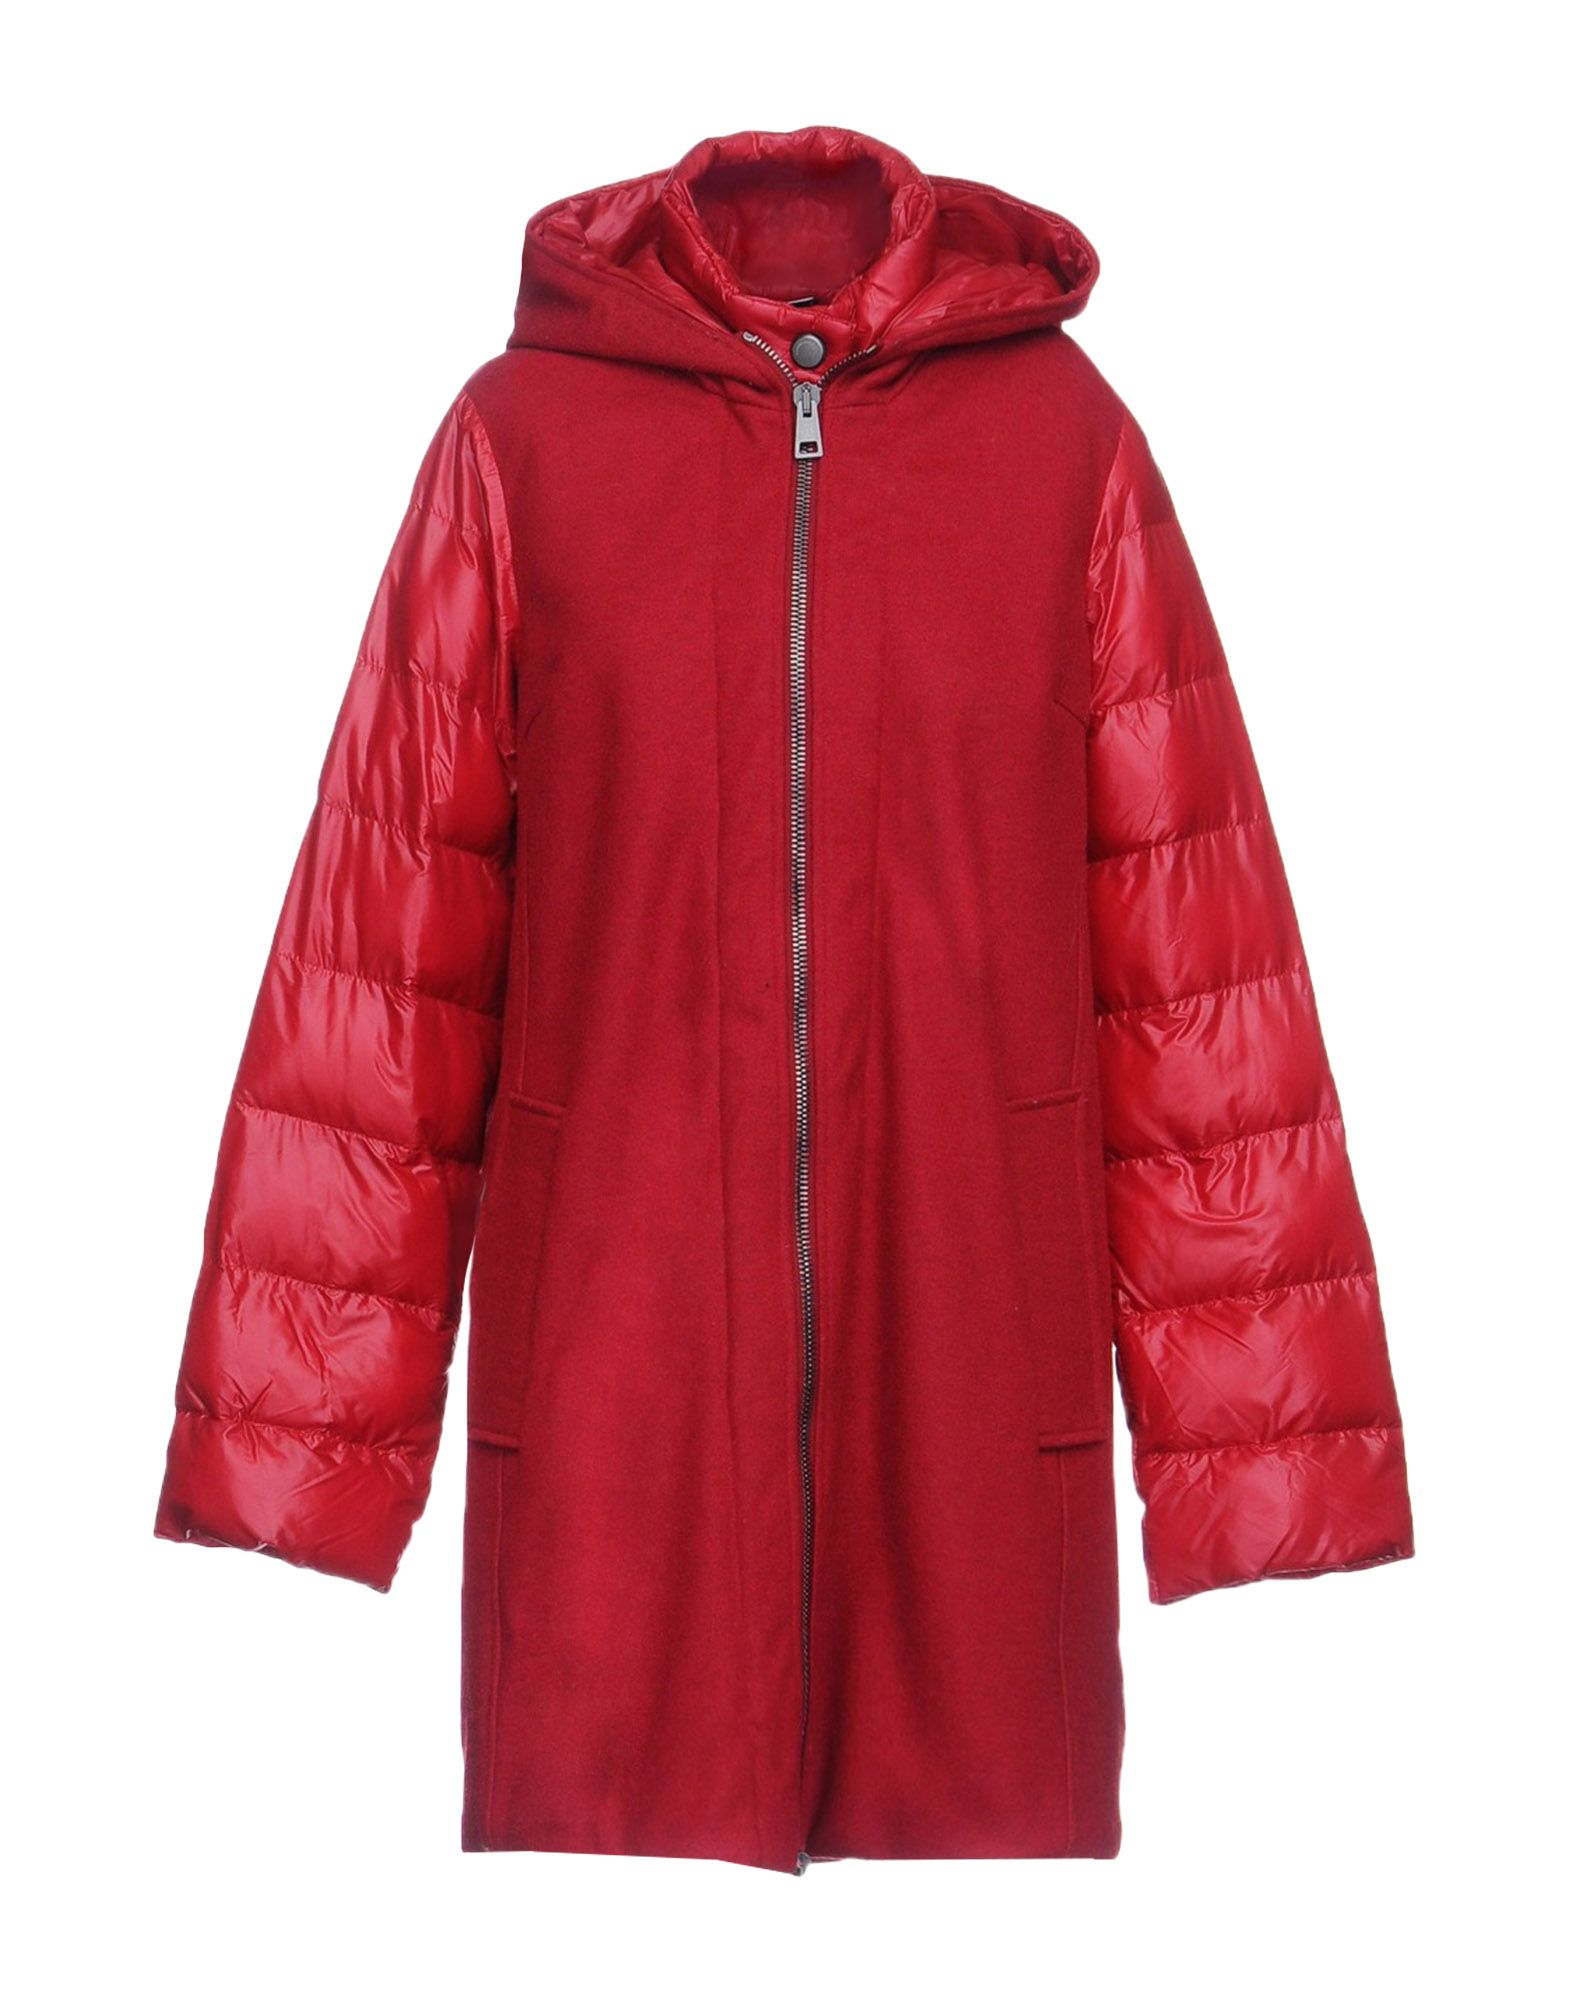 CAPOBIANCO Coat in Red